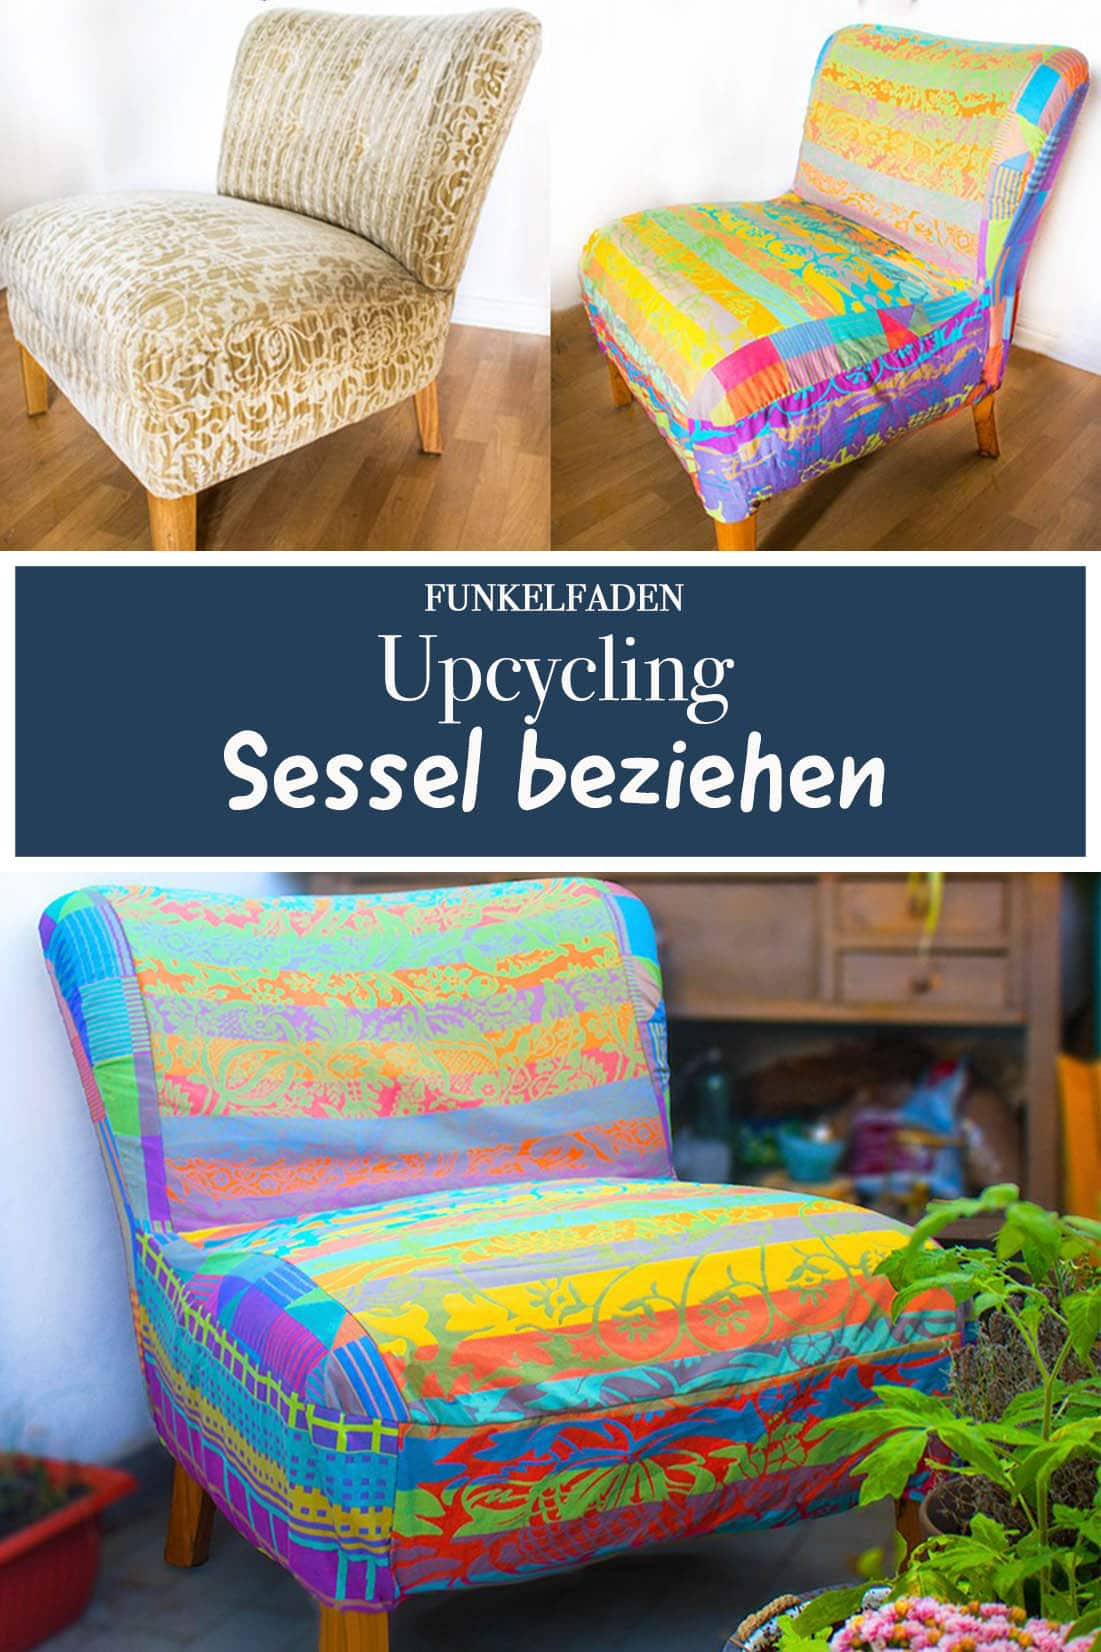 Upcycling Sessel beziehen